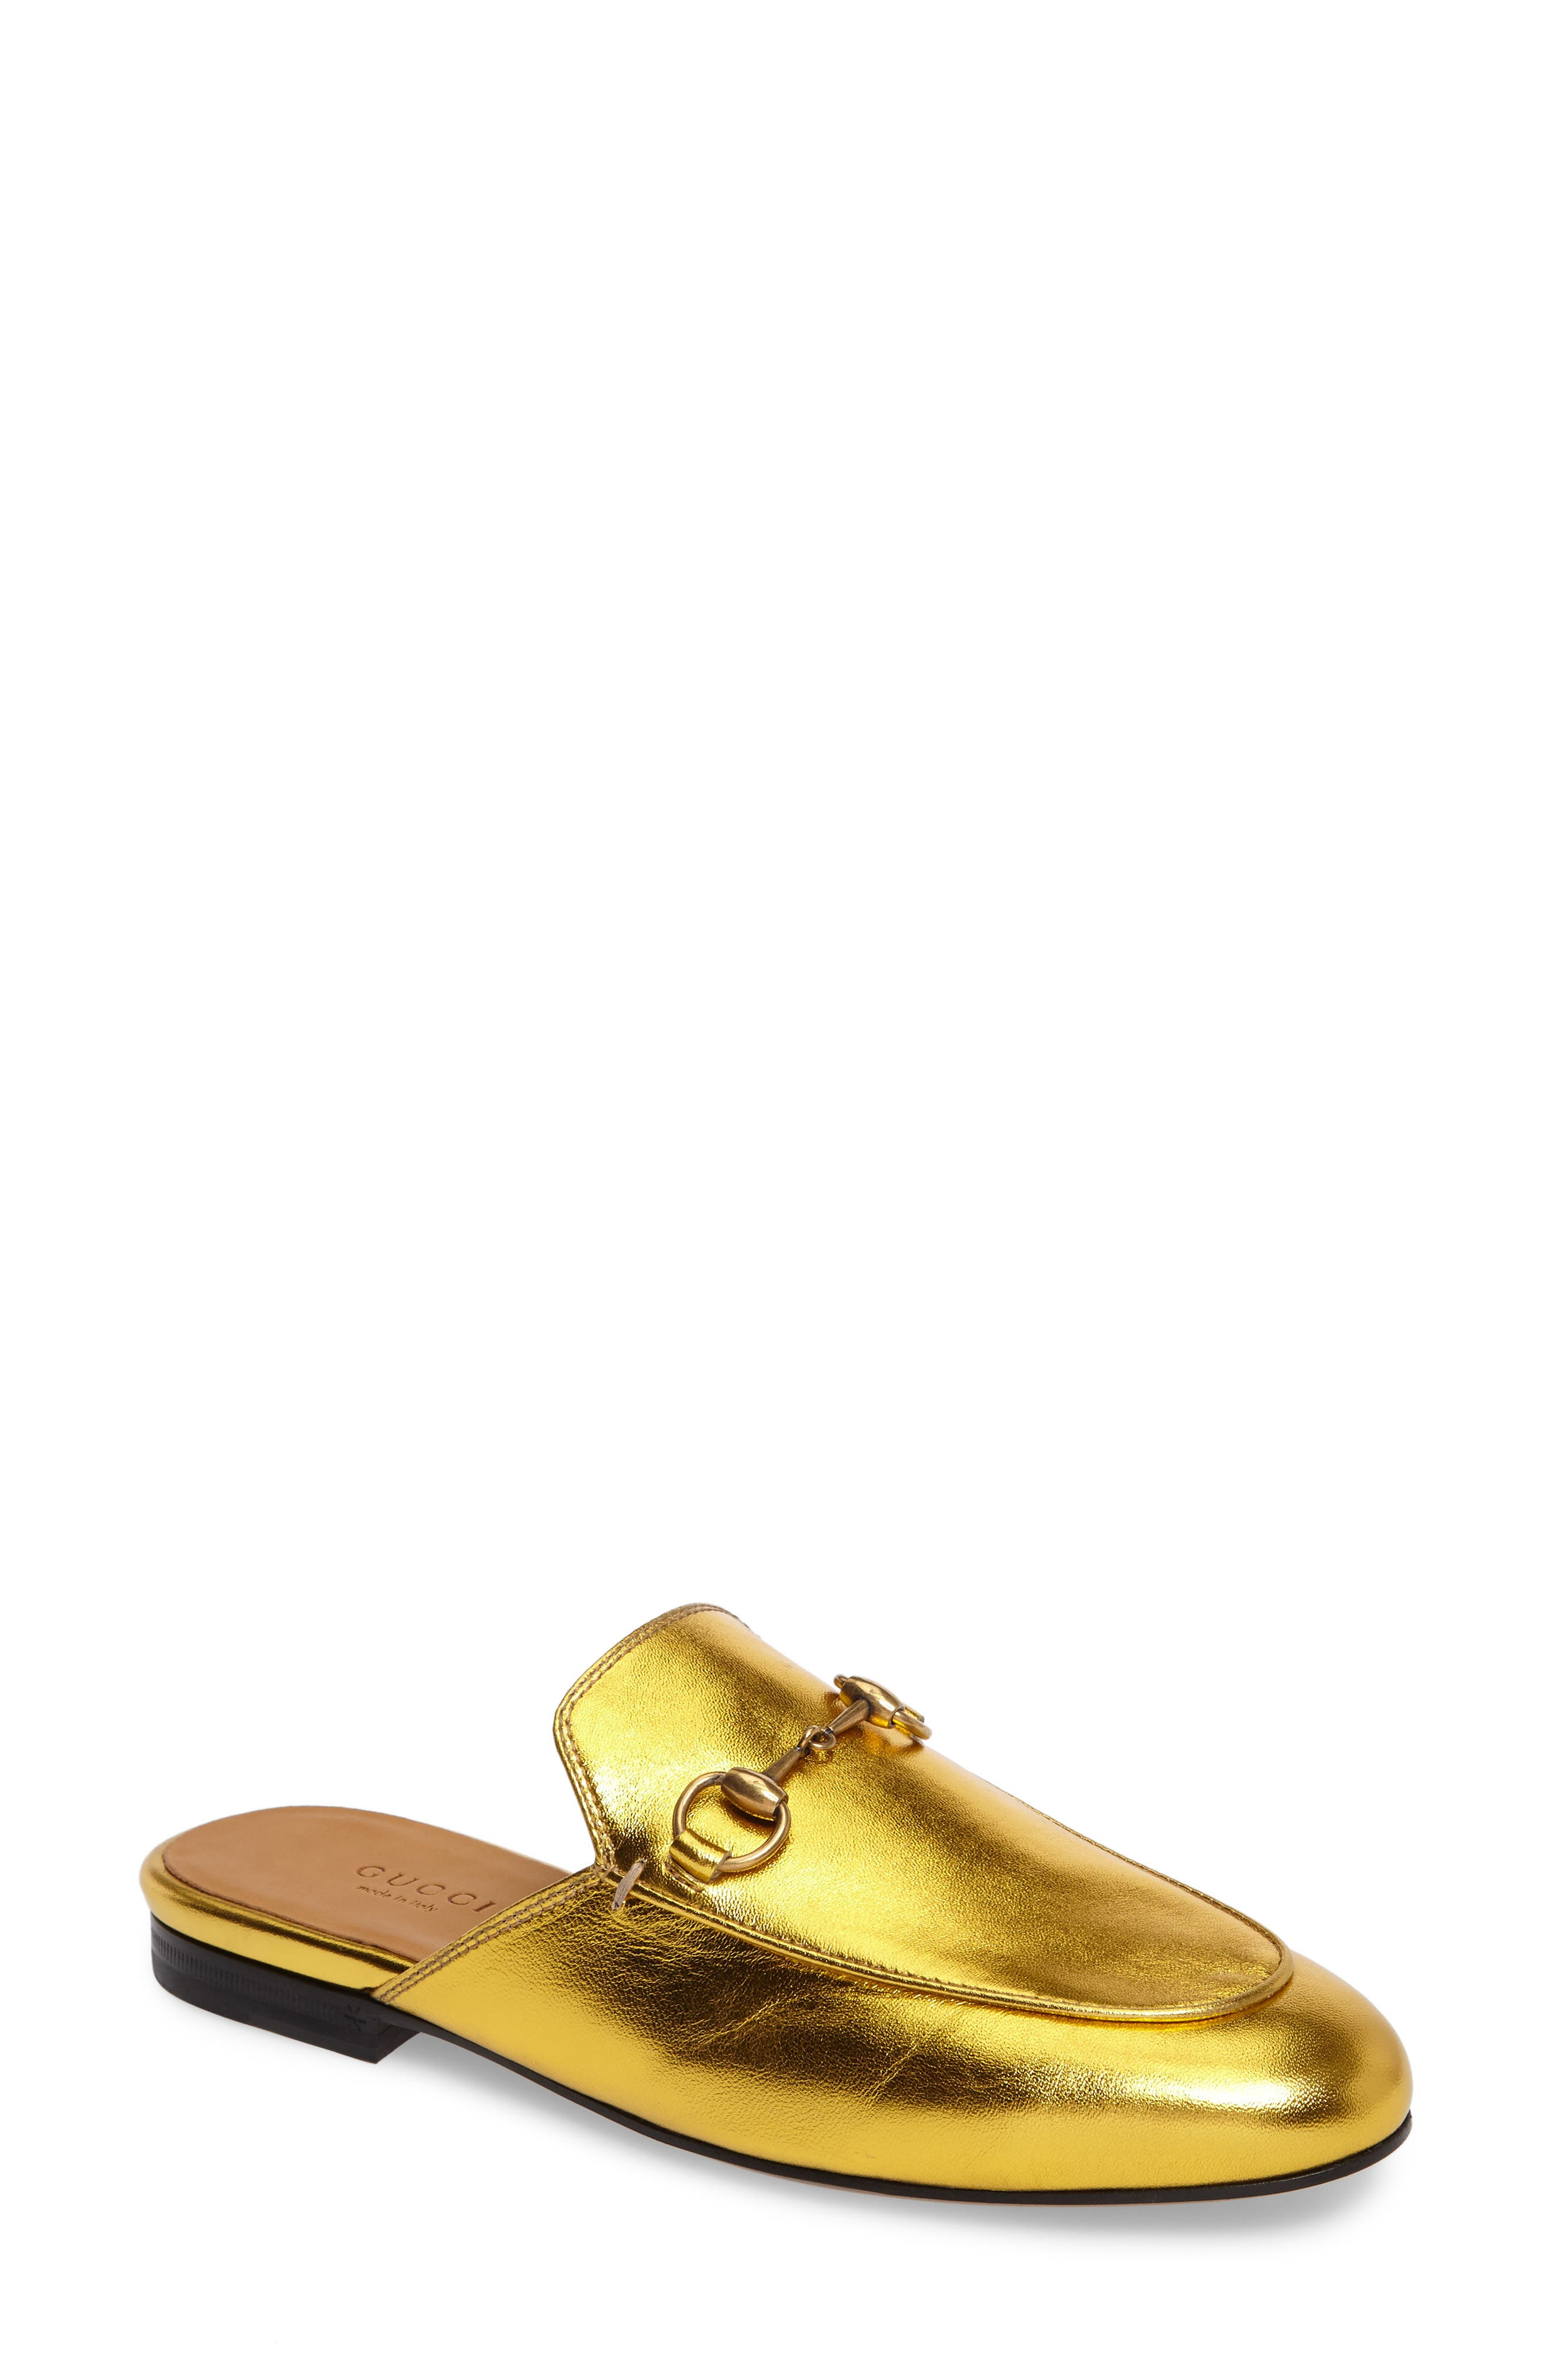 Princetown Loafer Mule,                         Main,                         color, Metallic Gold Leather